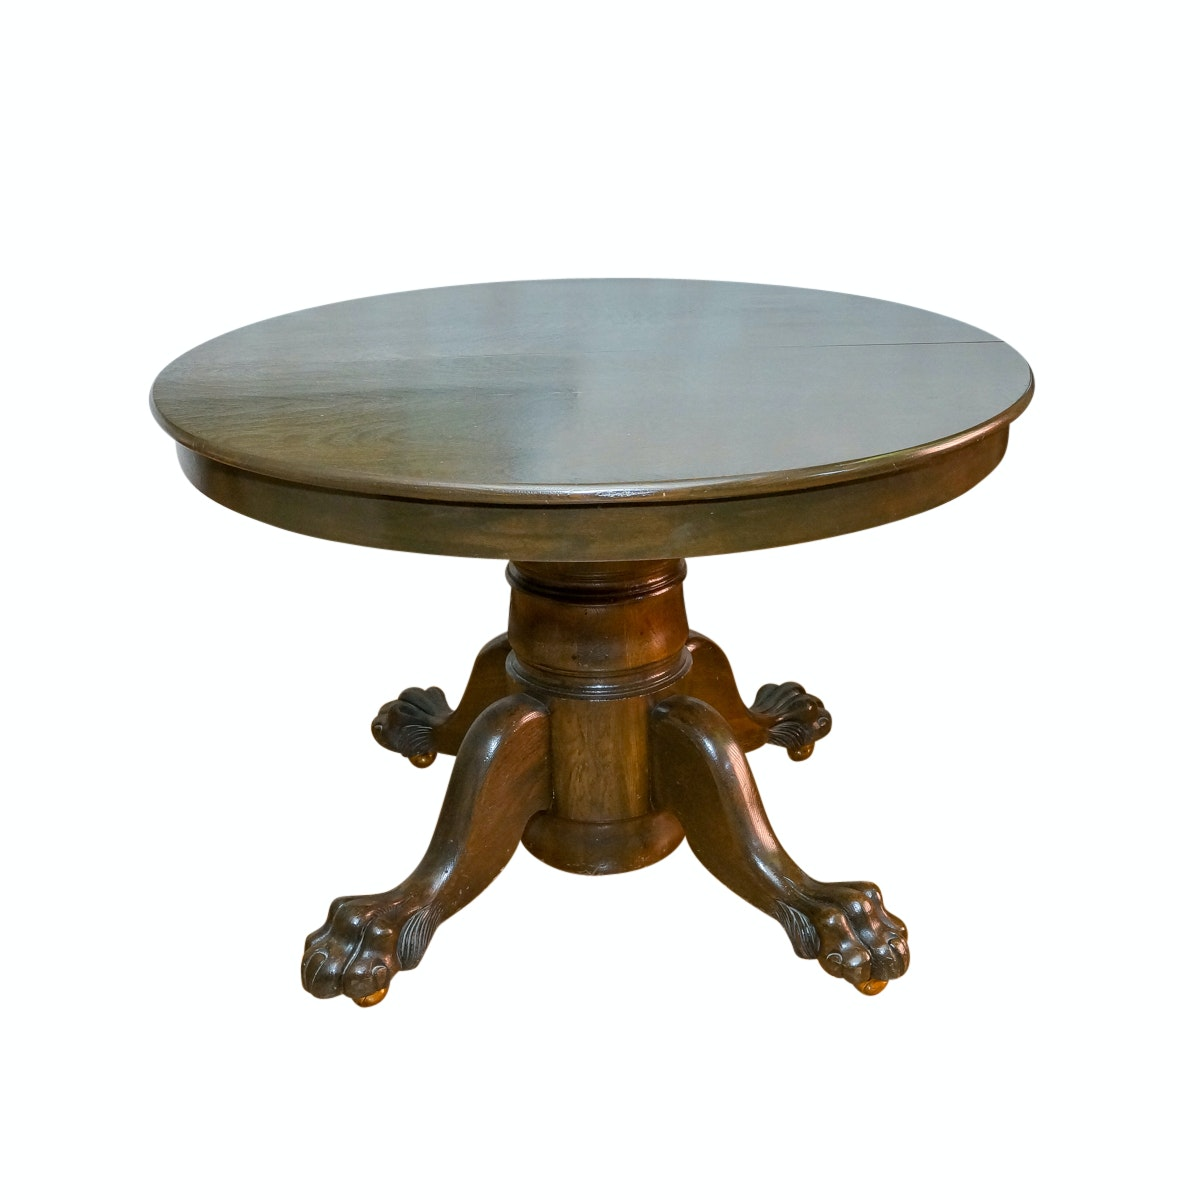 Vintage Pedestal Table with Extension Leaves